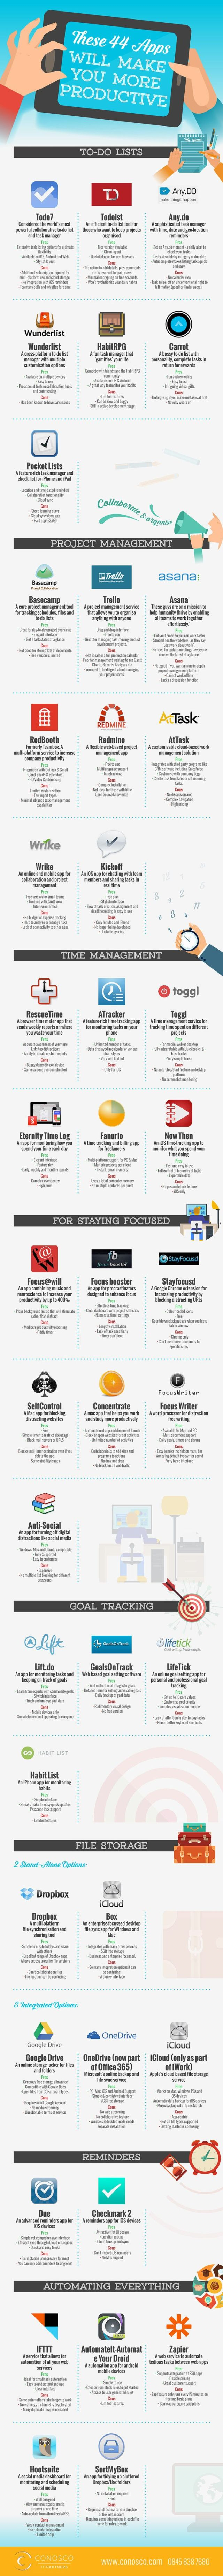 44 Apps To Make You More Productive